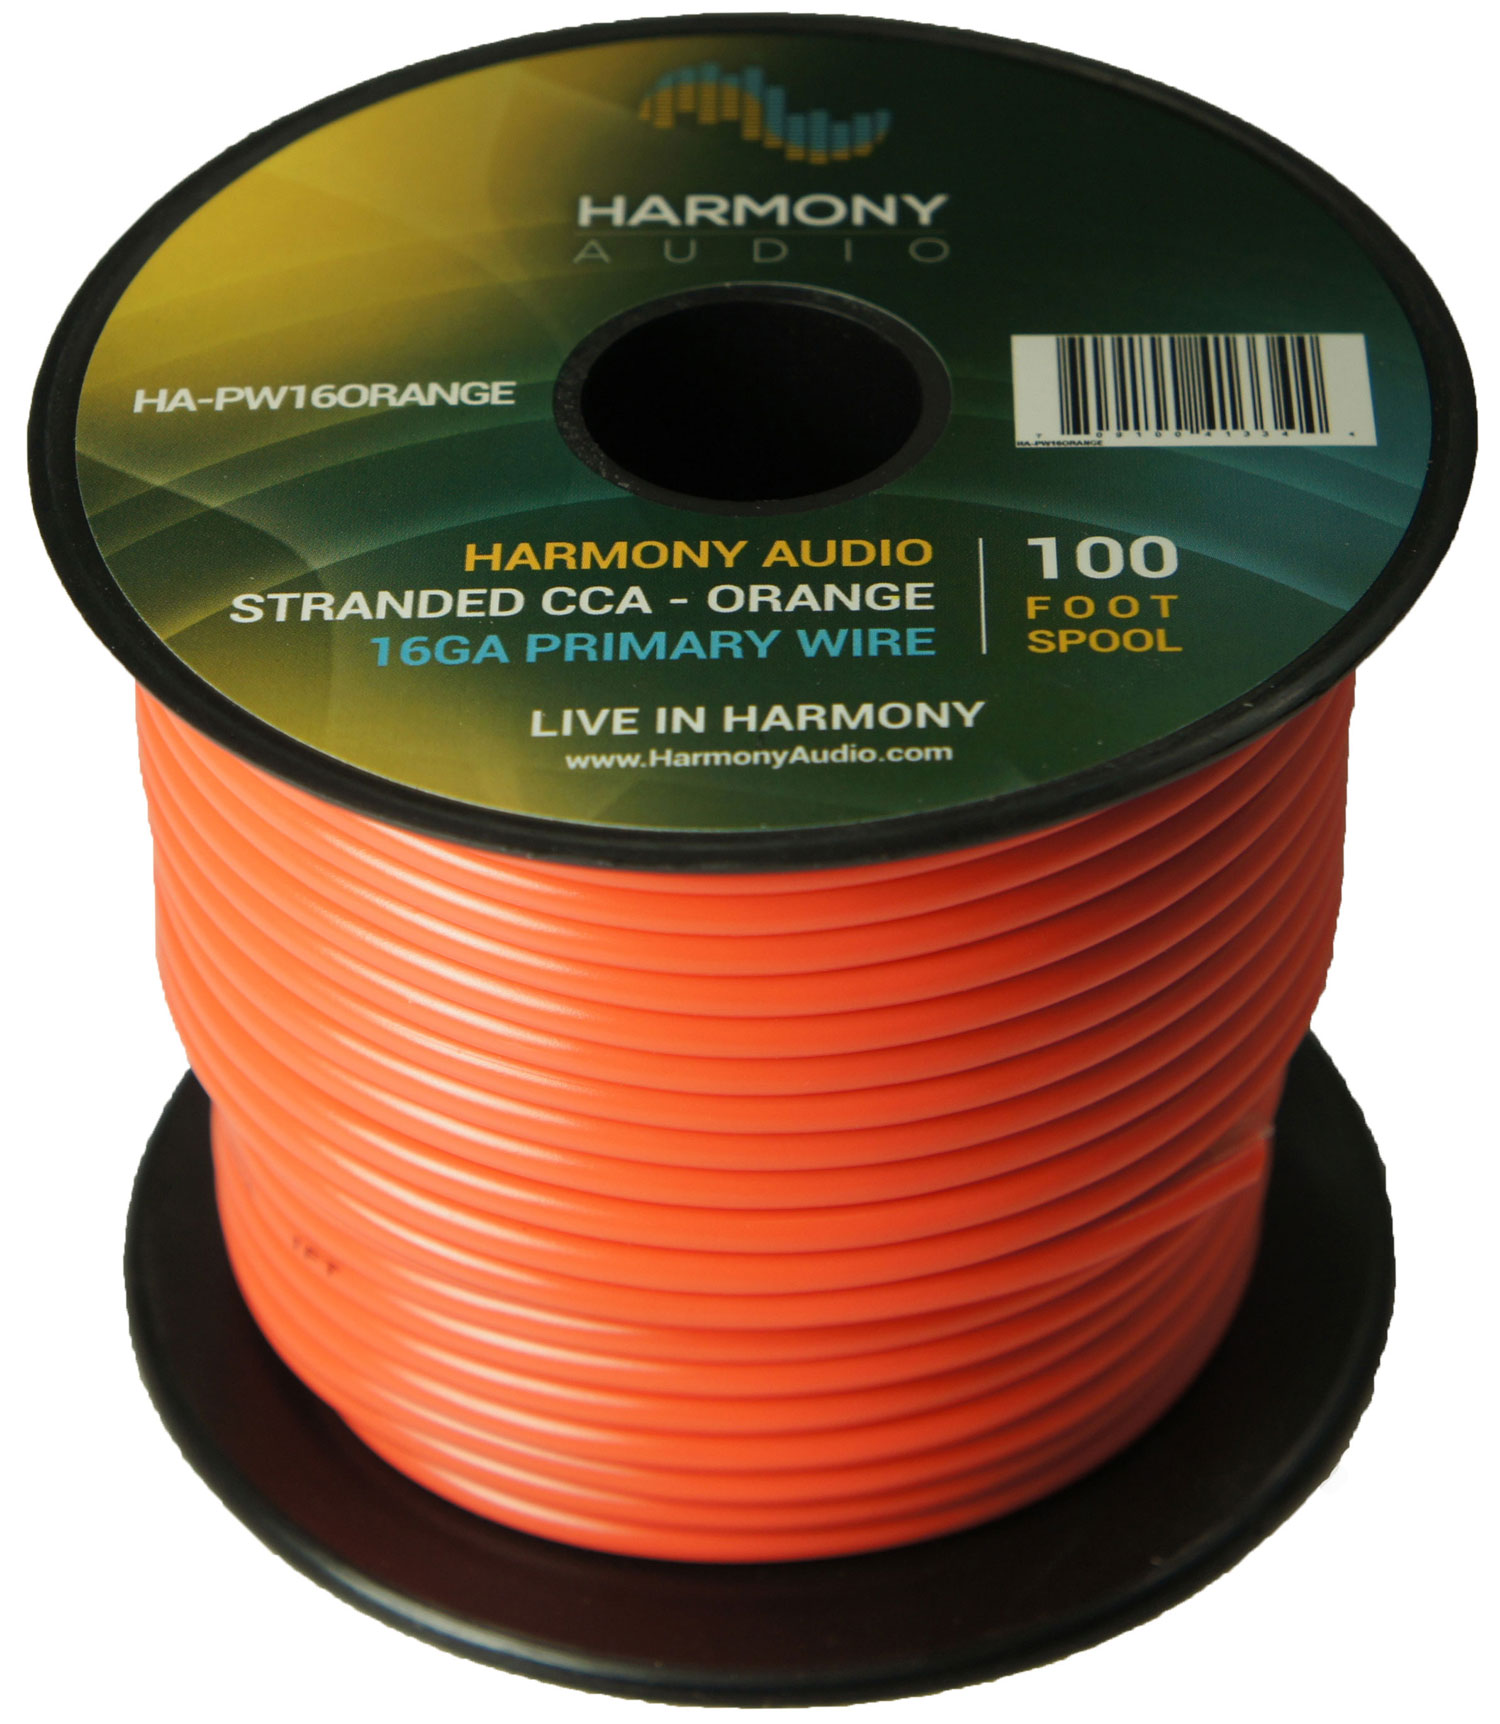 Harmony Audio HA-PW16ORANGE Primary Single Conductor 16 Gauge Orange Power or Ground Wire Roll 100 Feet Cable for Car Audio / Trailer / Model Train / Remote